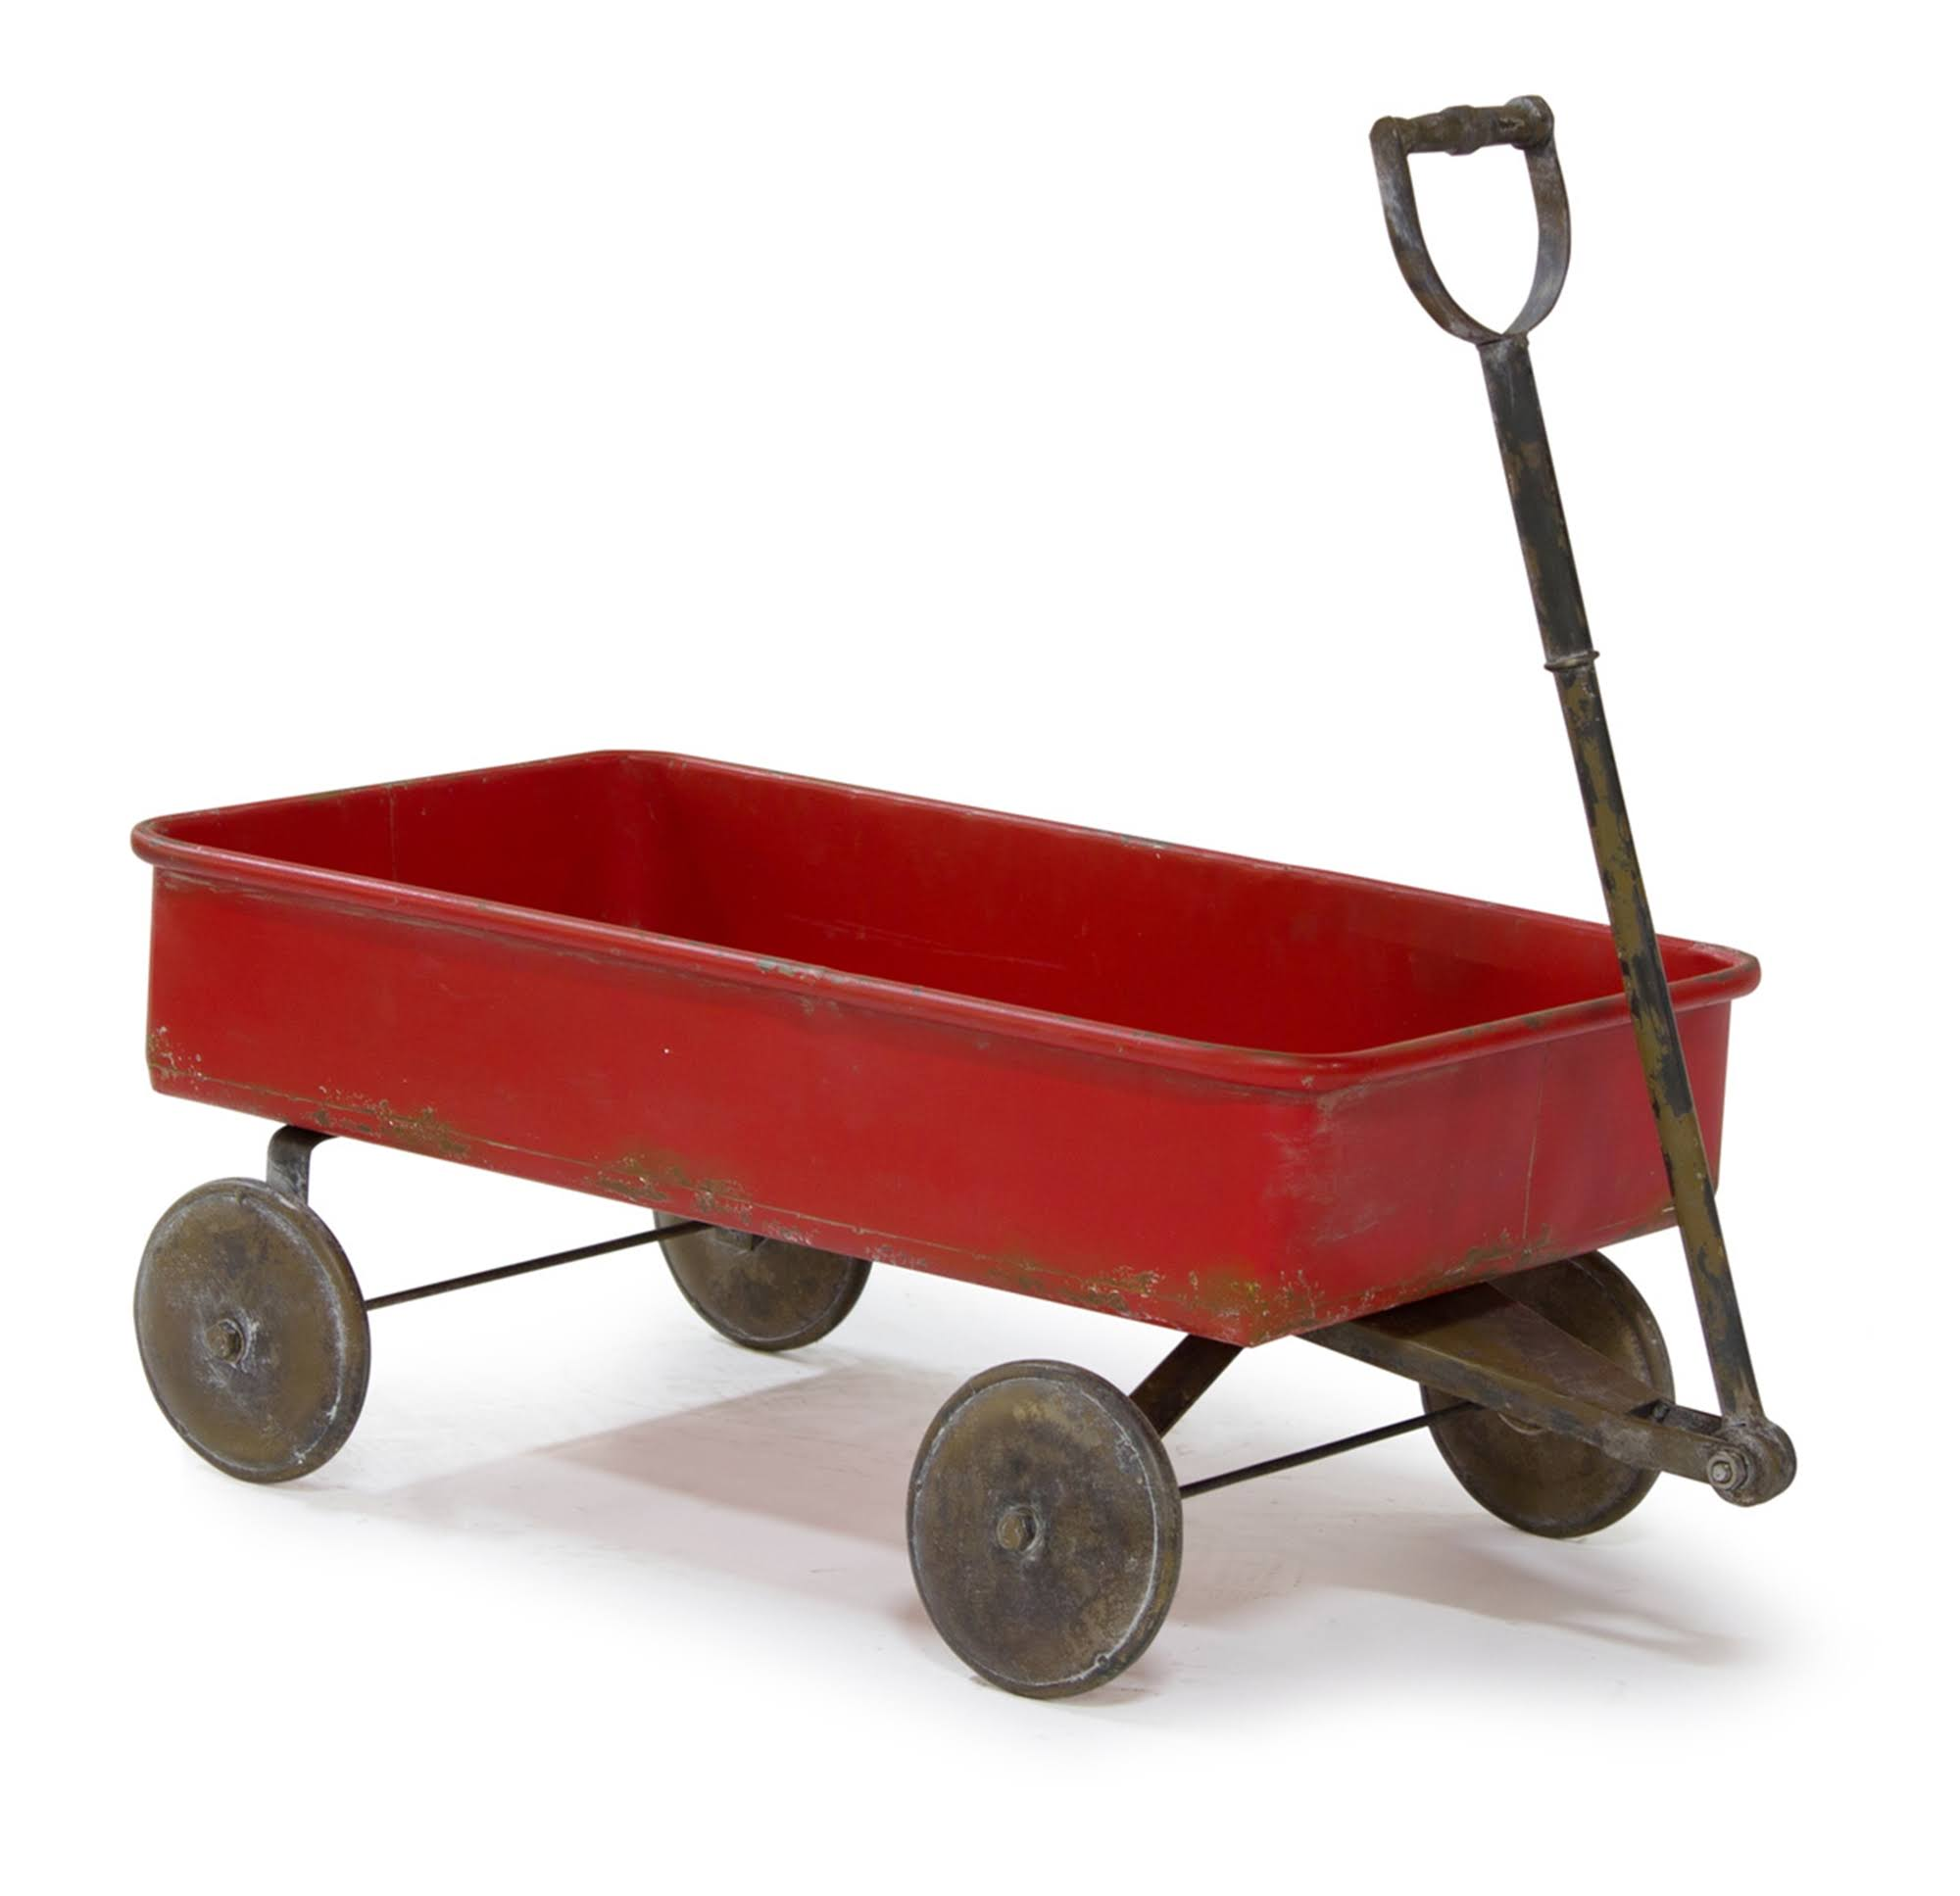 Melrose 24.5 inch Rustic Red Distressed Finished Wagons